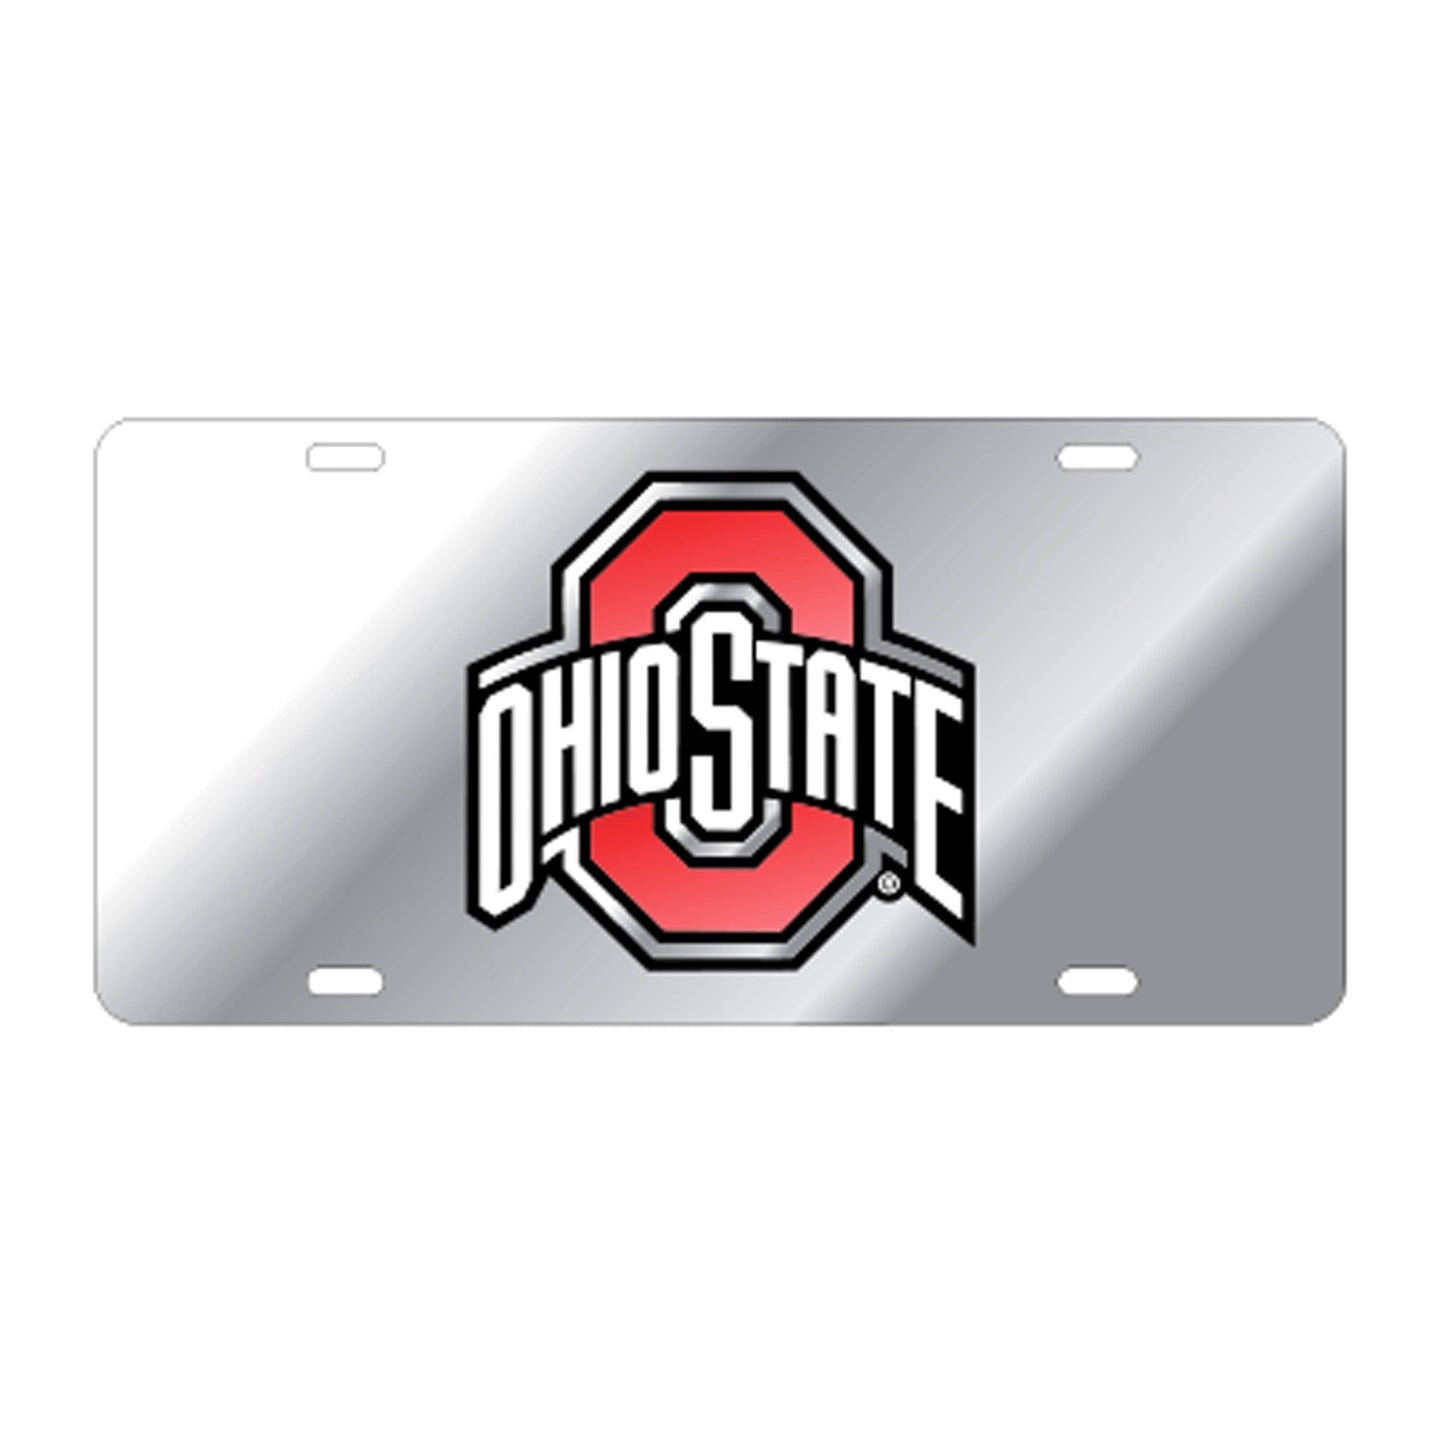 Ohio State Mirrored Athletic O License Plate